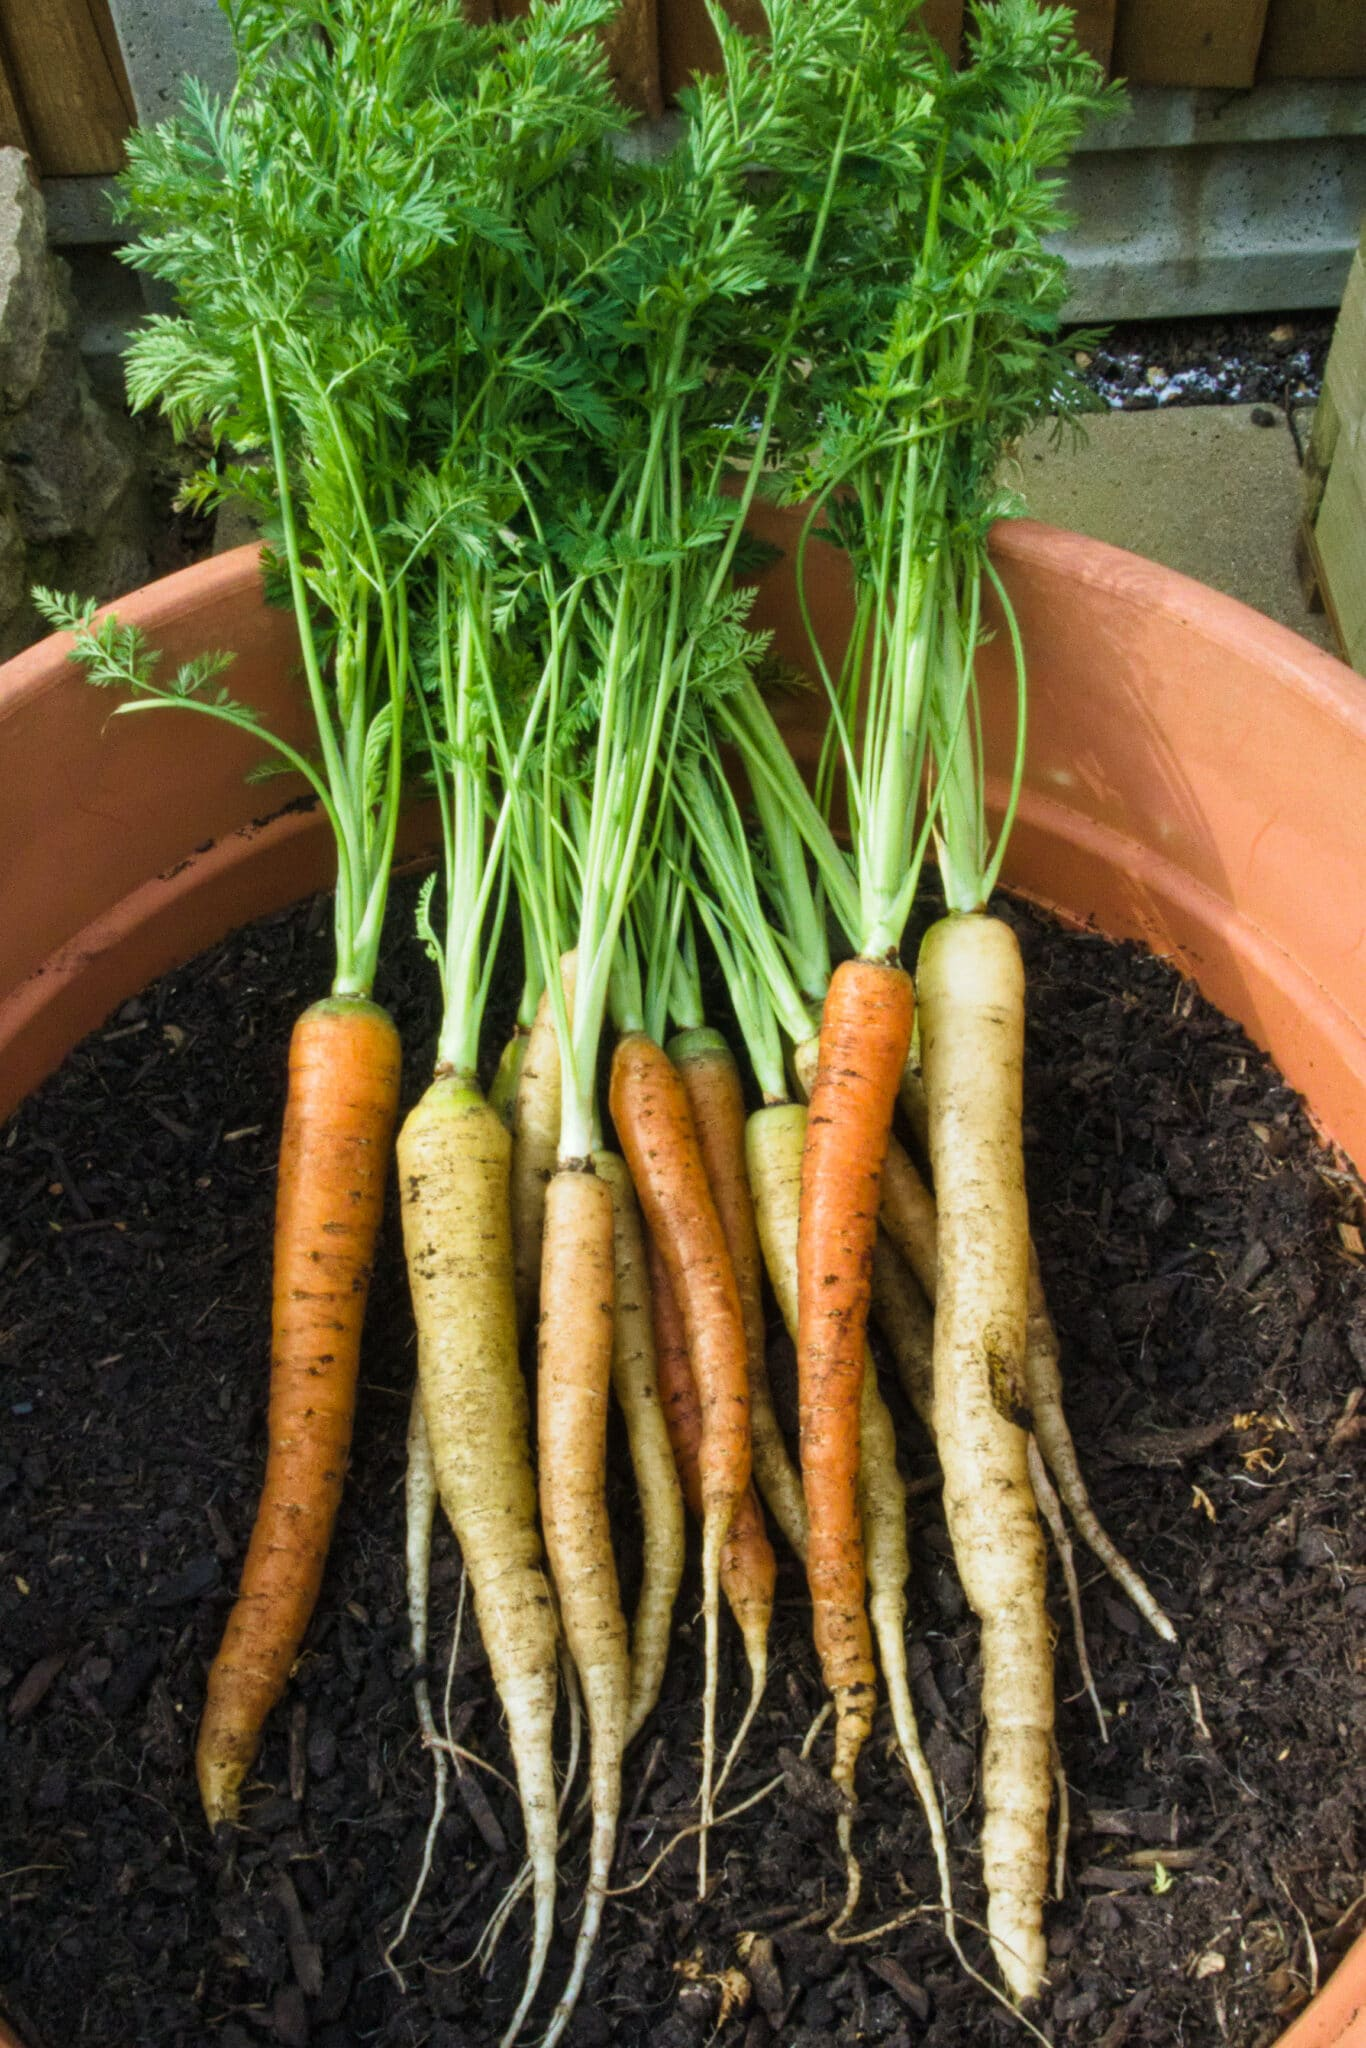 Freshly harvested carrots in the terracotta pot the were grown in.